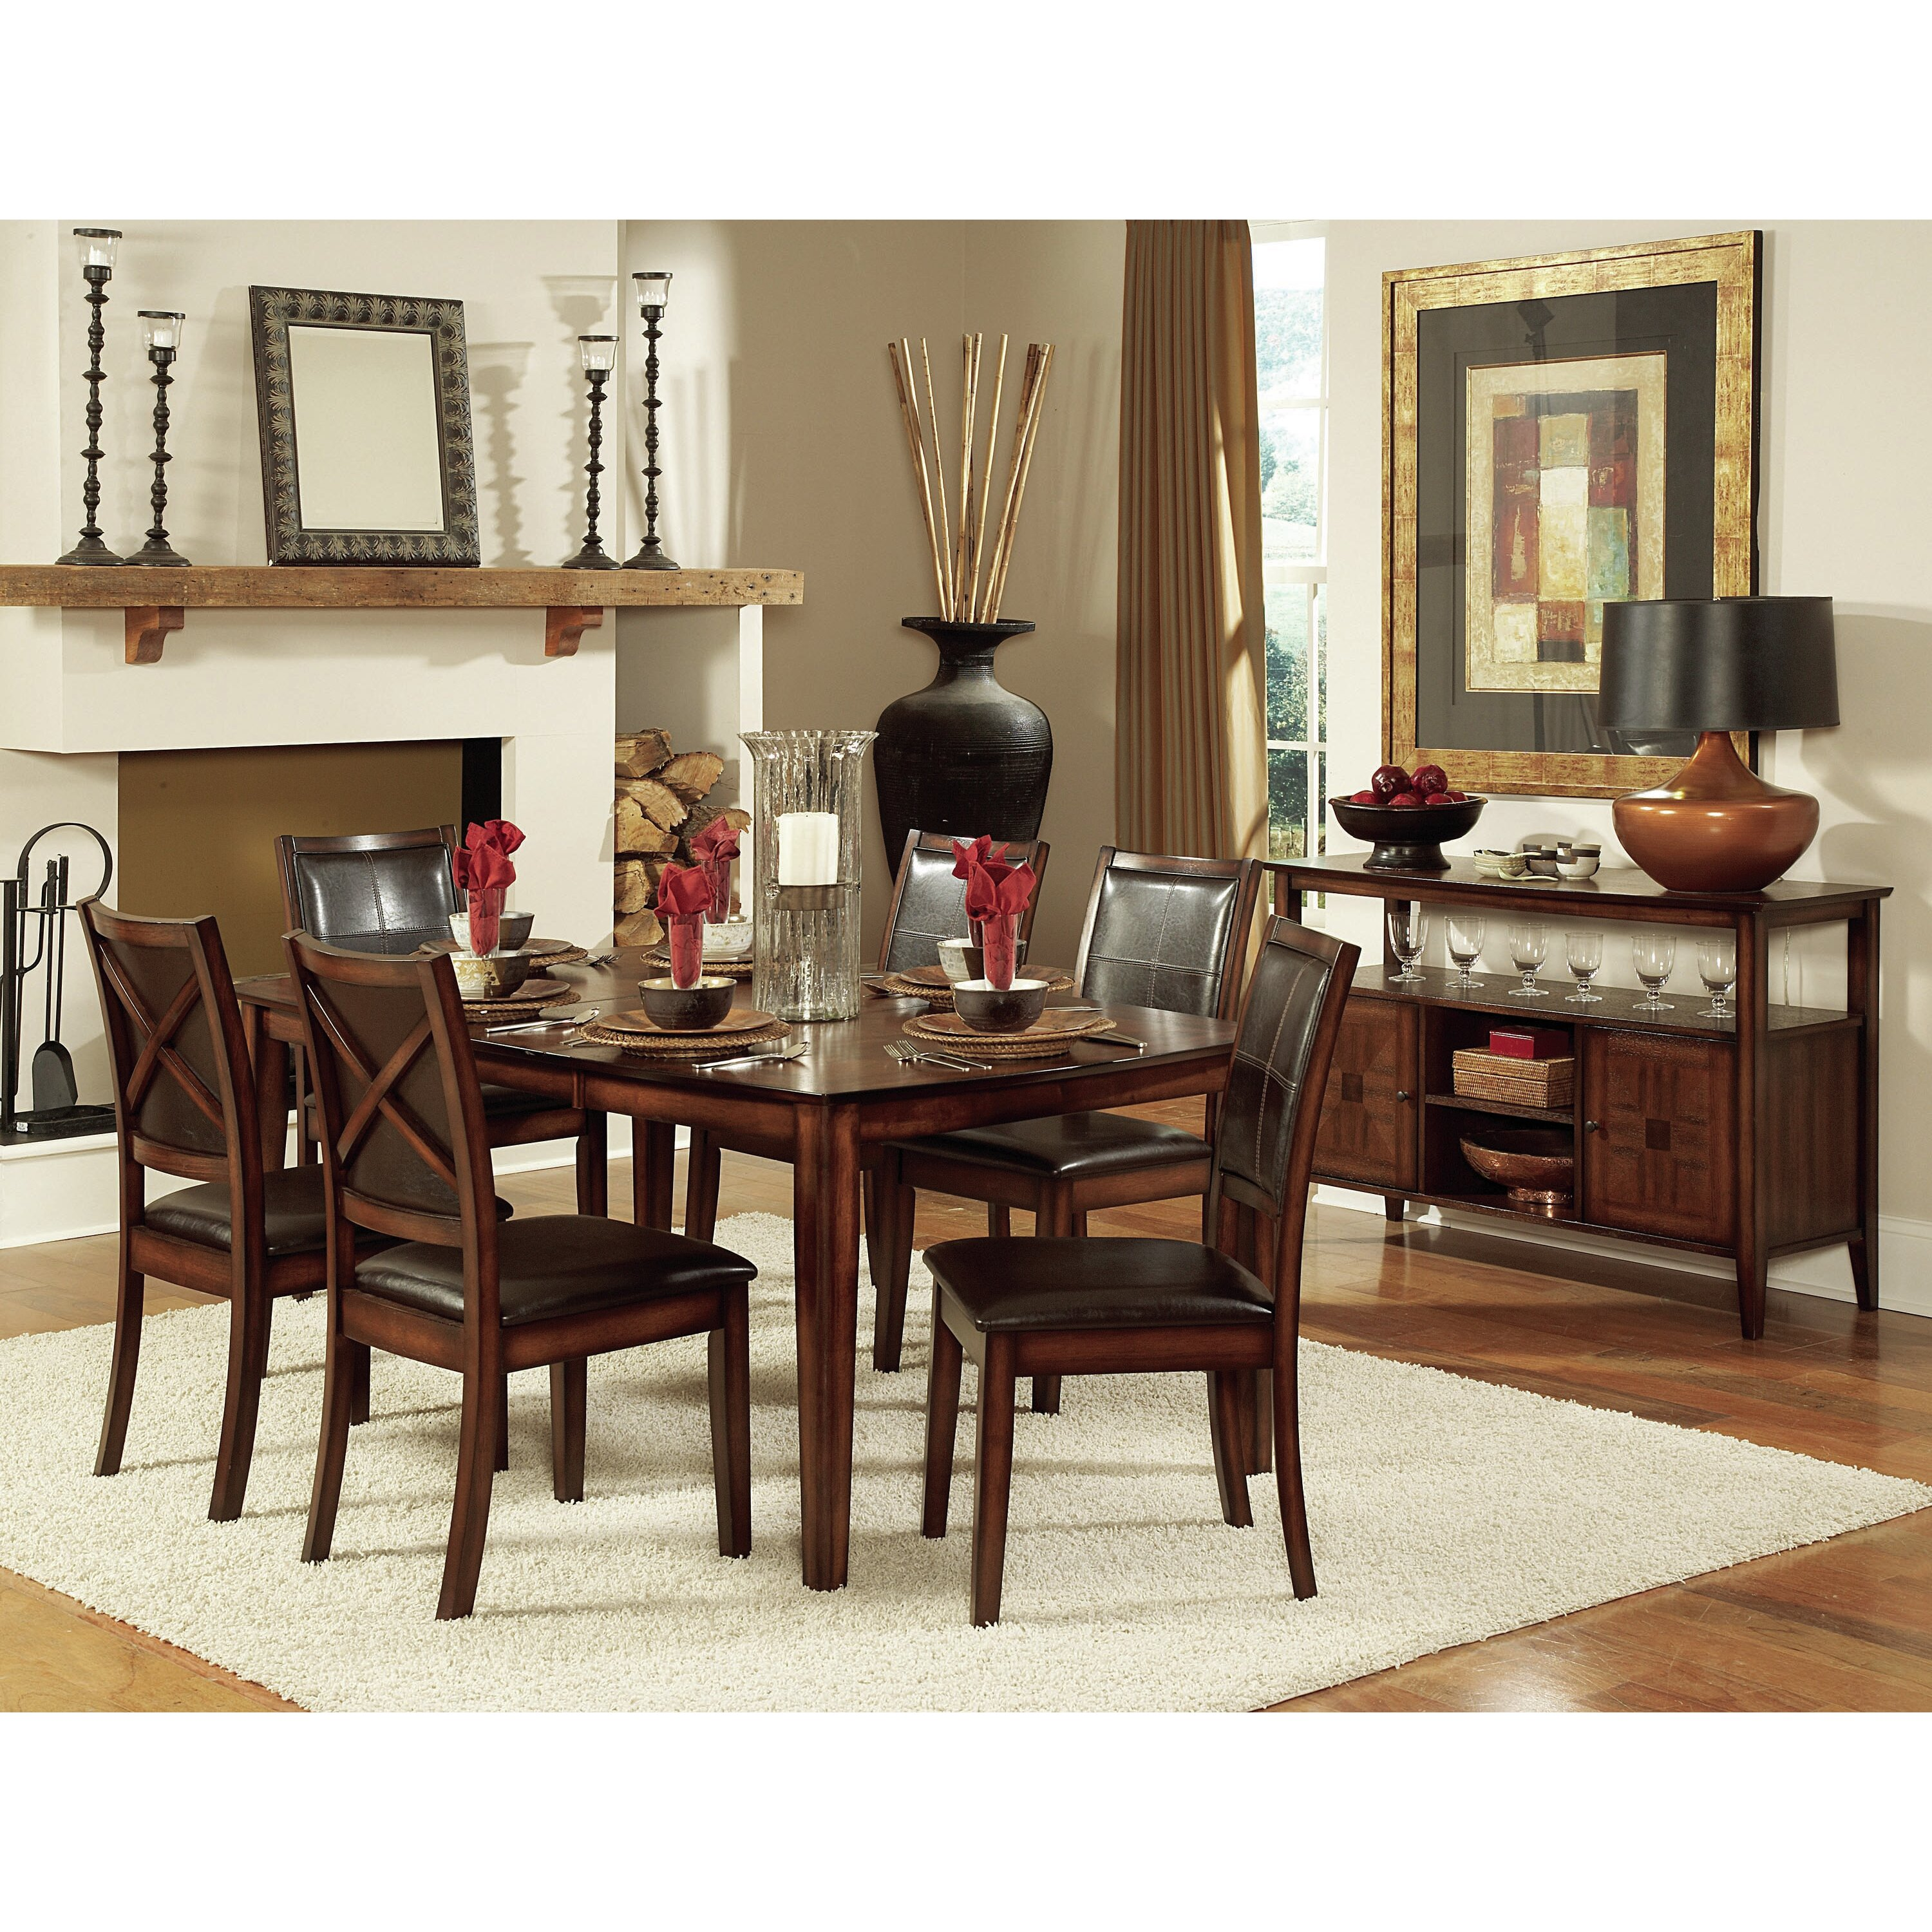 Woodhaven Hill Verona 7 Piece Dining Set & Reviews